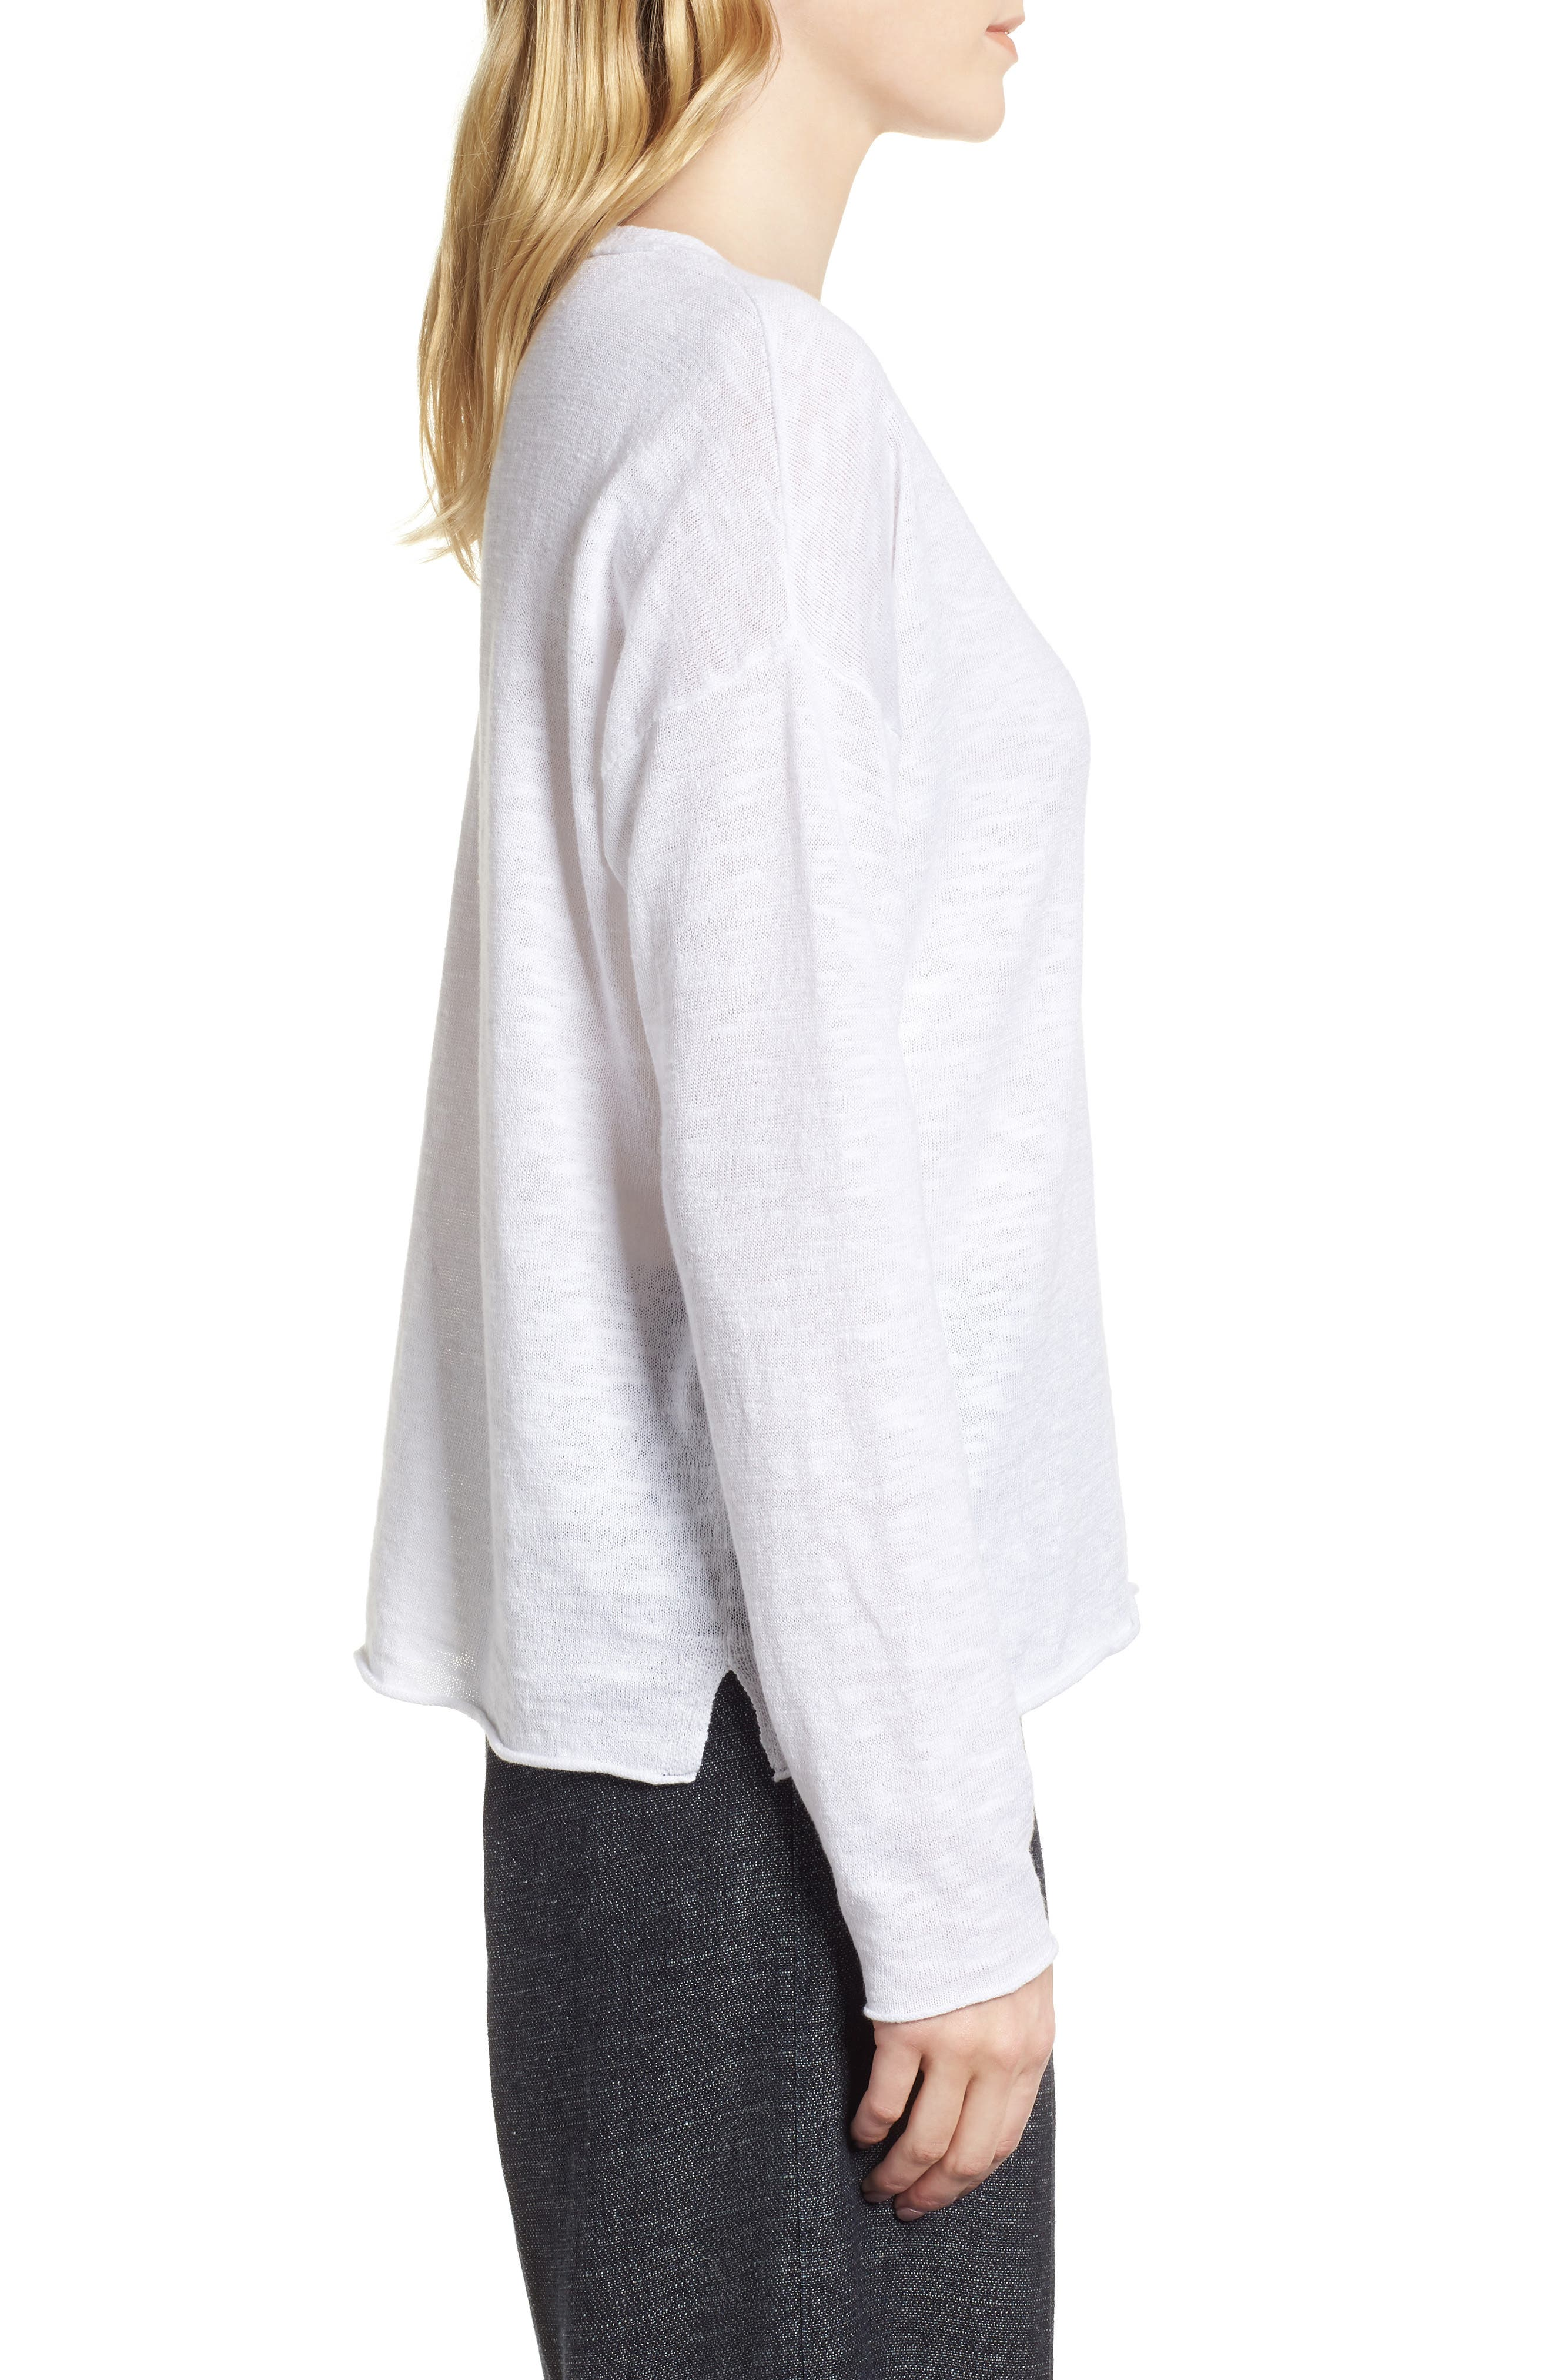 Boxy Organic Linen & Cotton Sweater,                             Alternate thumbnail 3, color,                             100